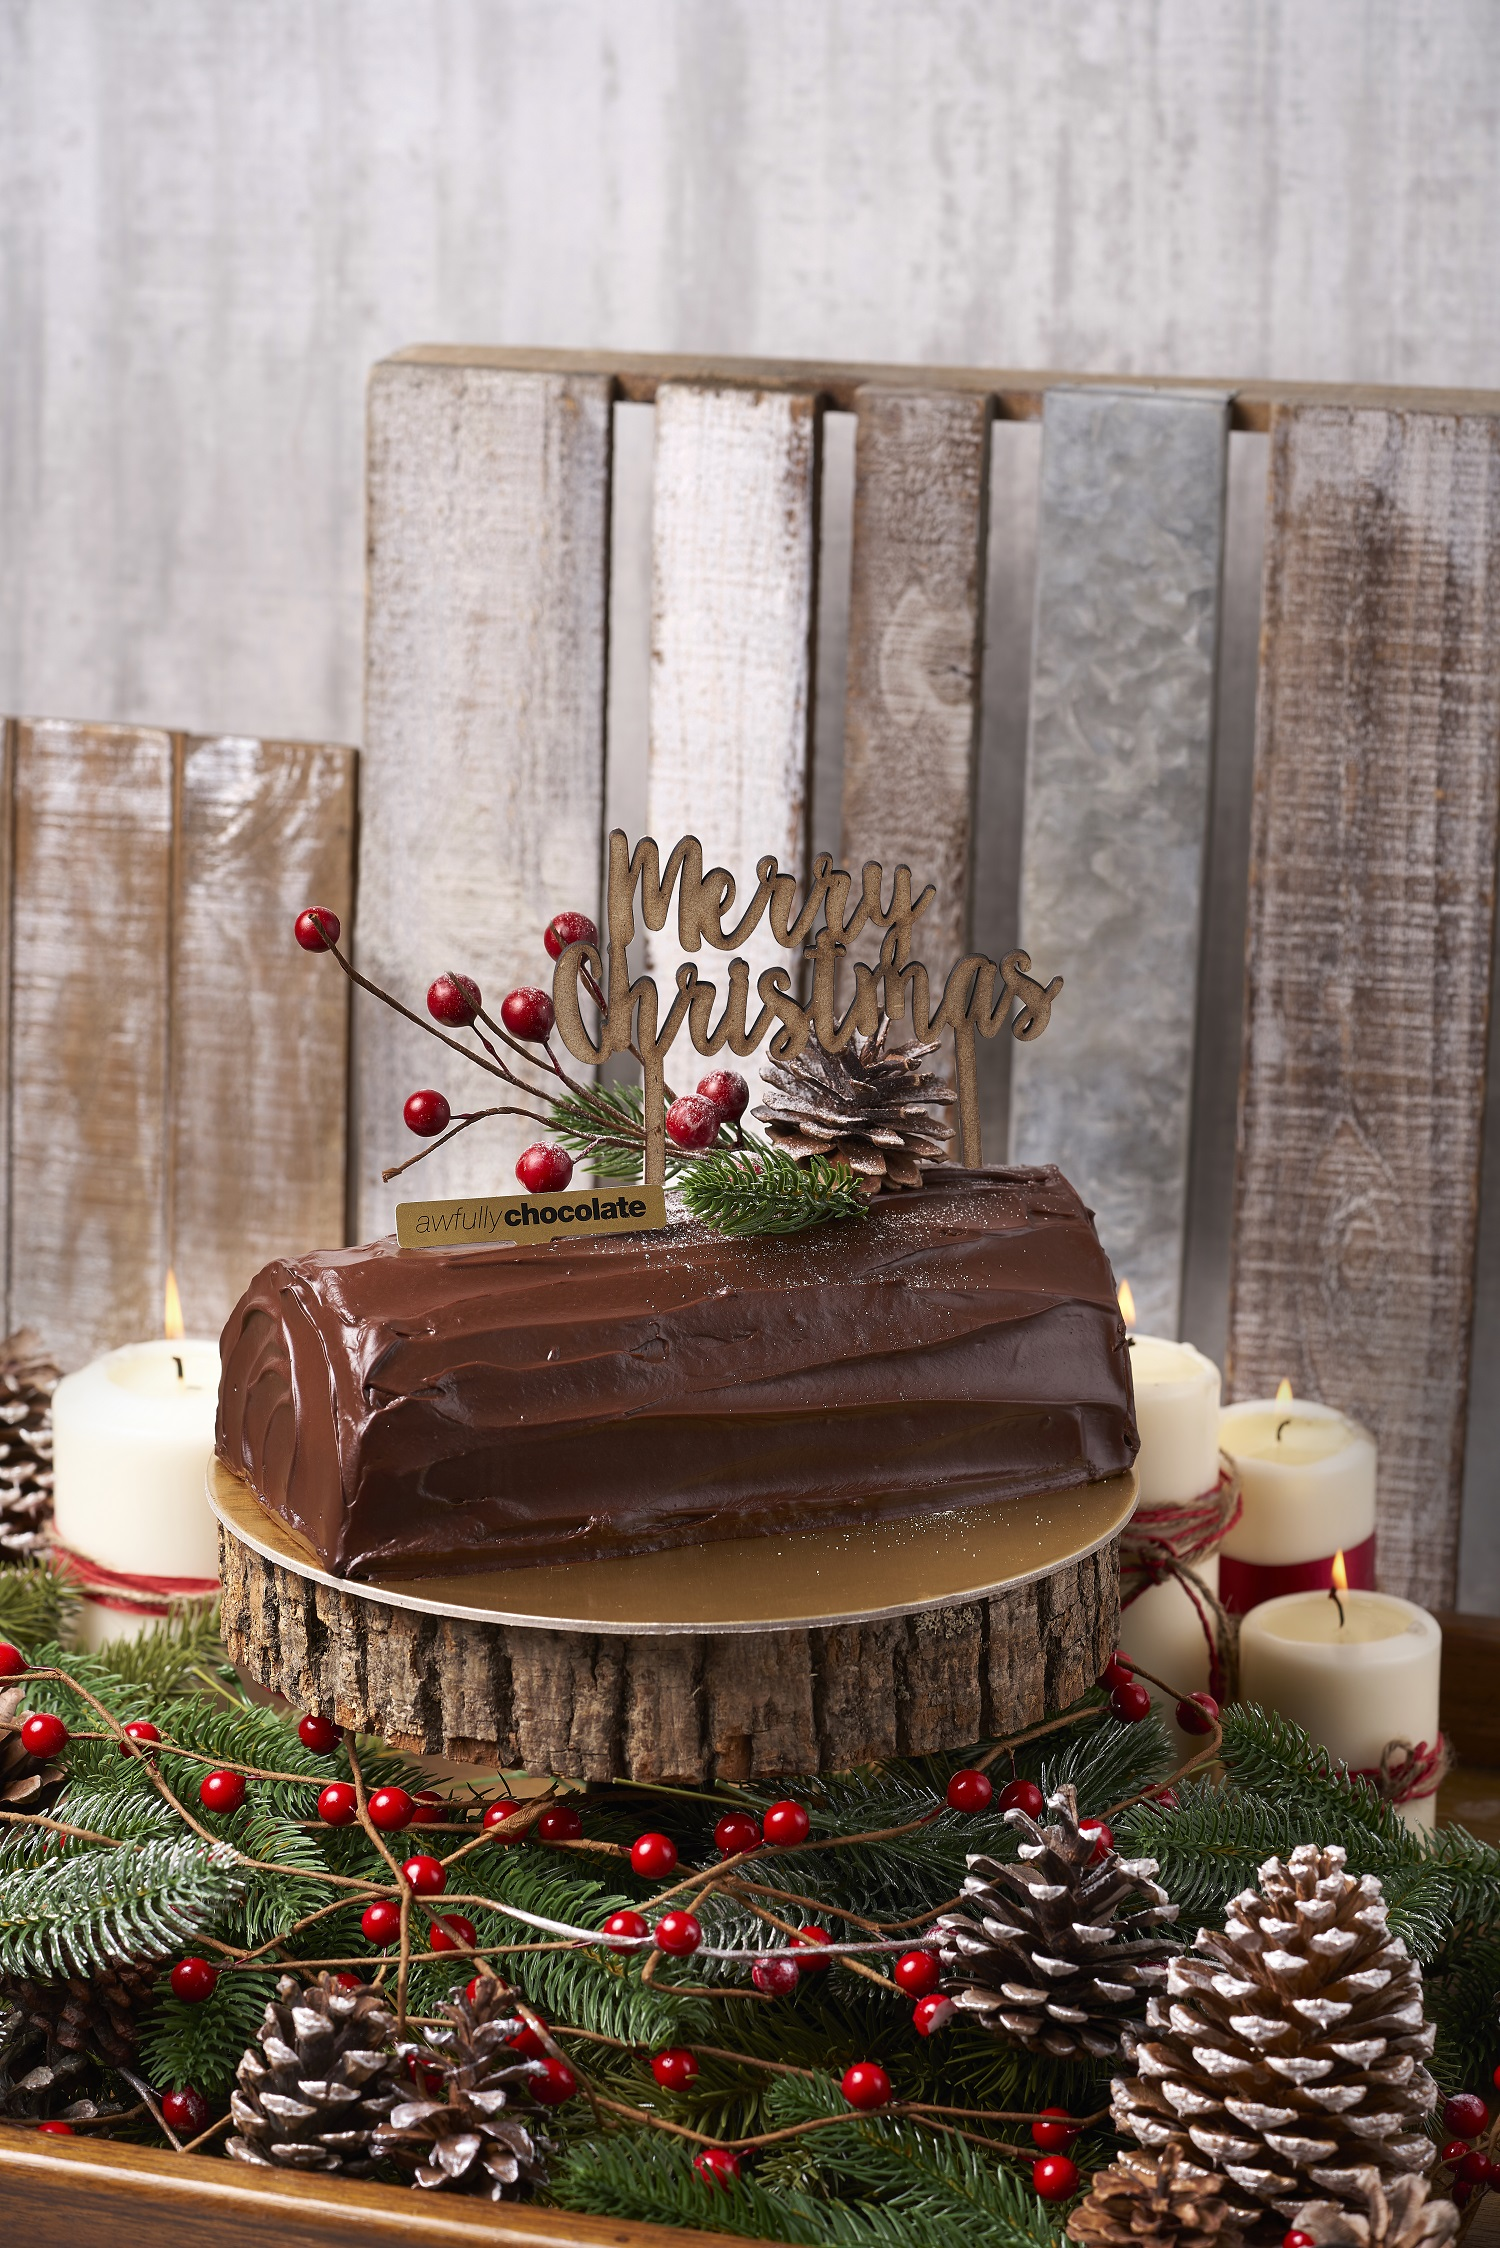 Christmas Cakes Hampers Awfully Chocolate